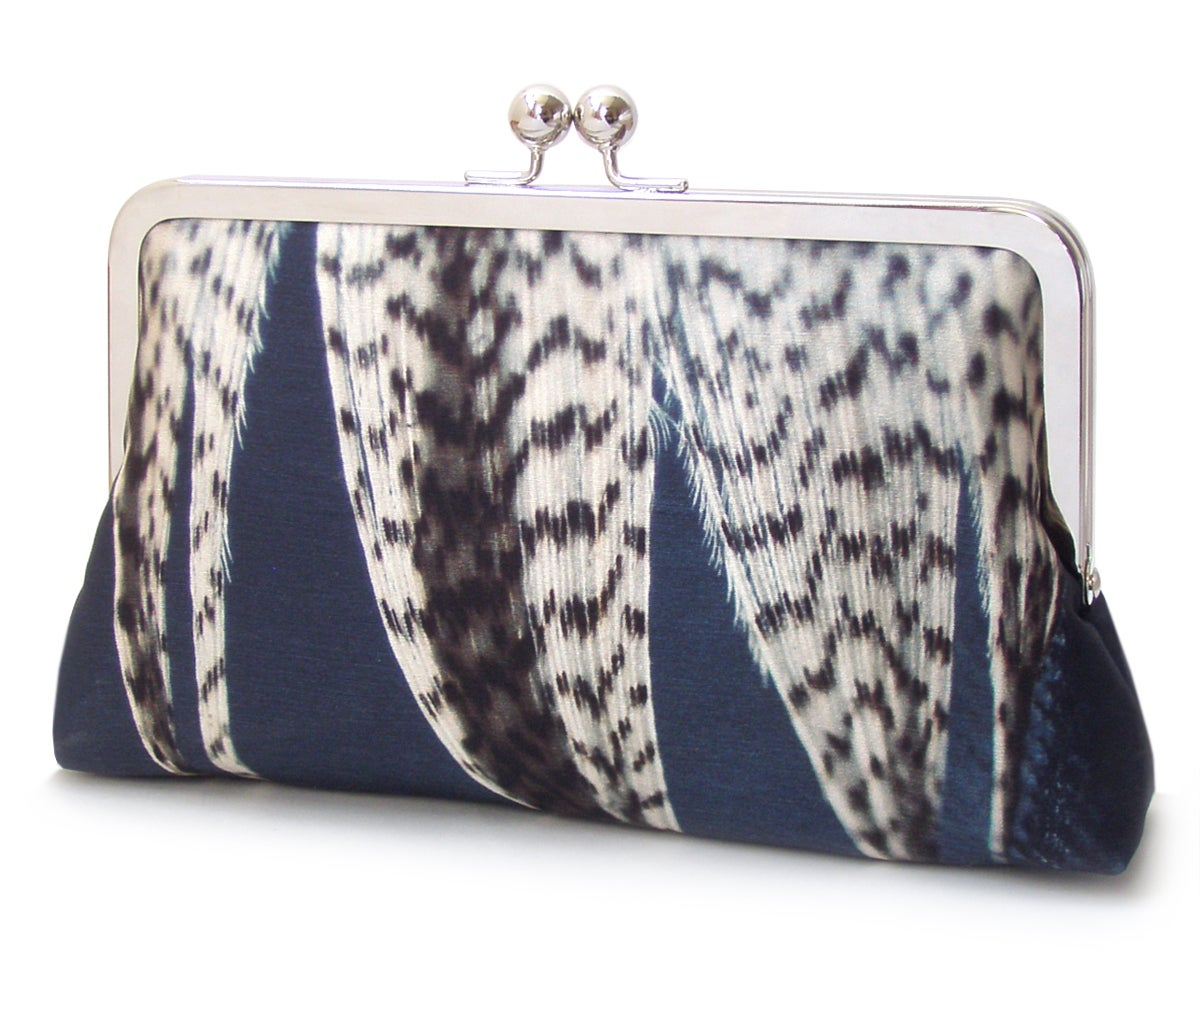 Image of Feather stripe clutch bag, silk purse, blue white